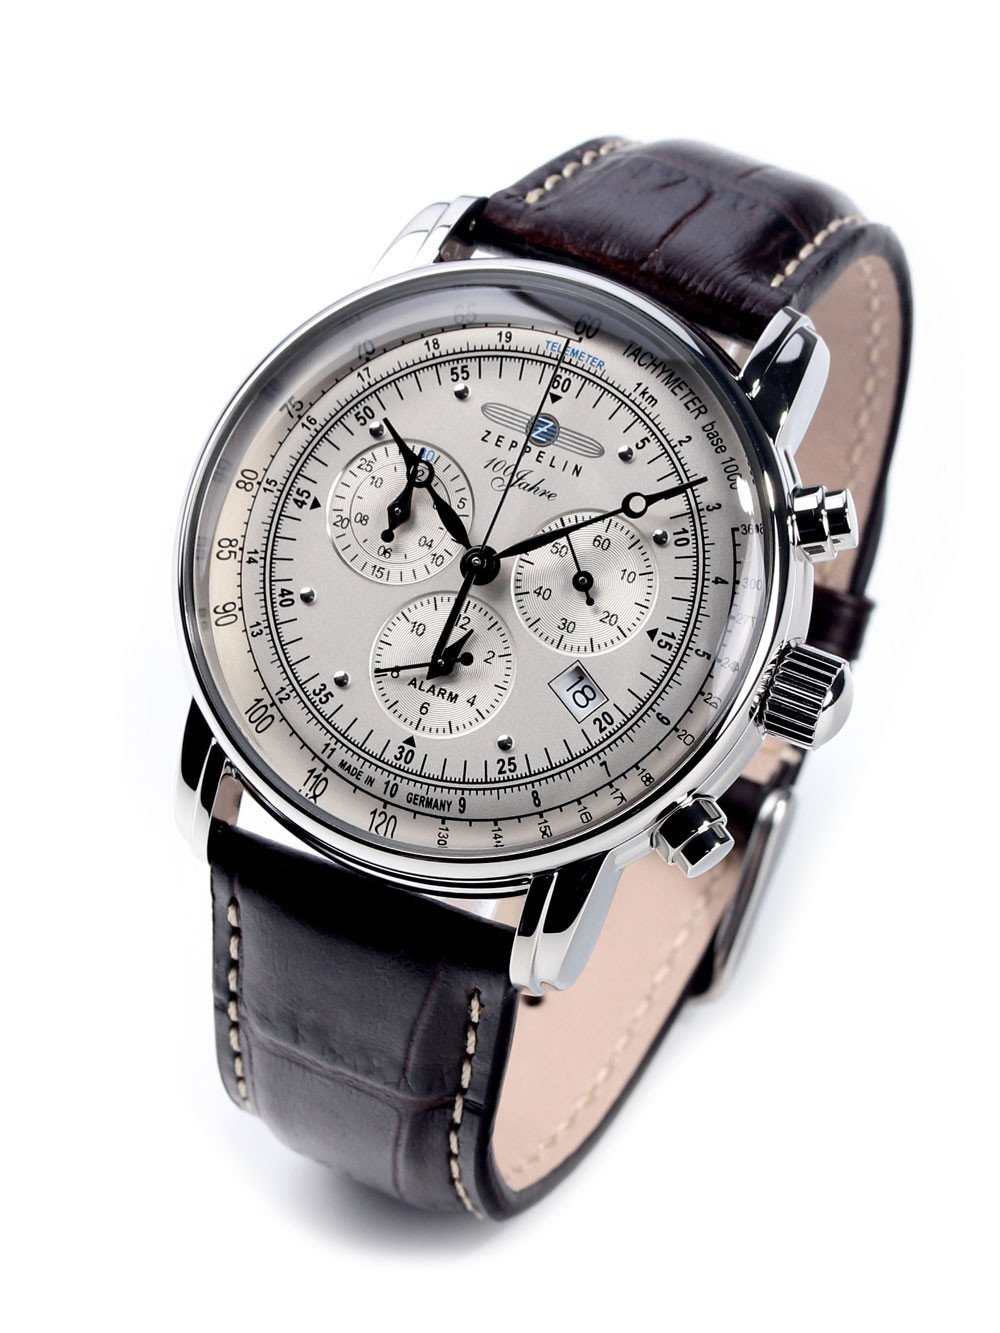 Zeppelin 7680-1 100 Years Zeppelin Alarm Chronograph 42mm 5ATM